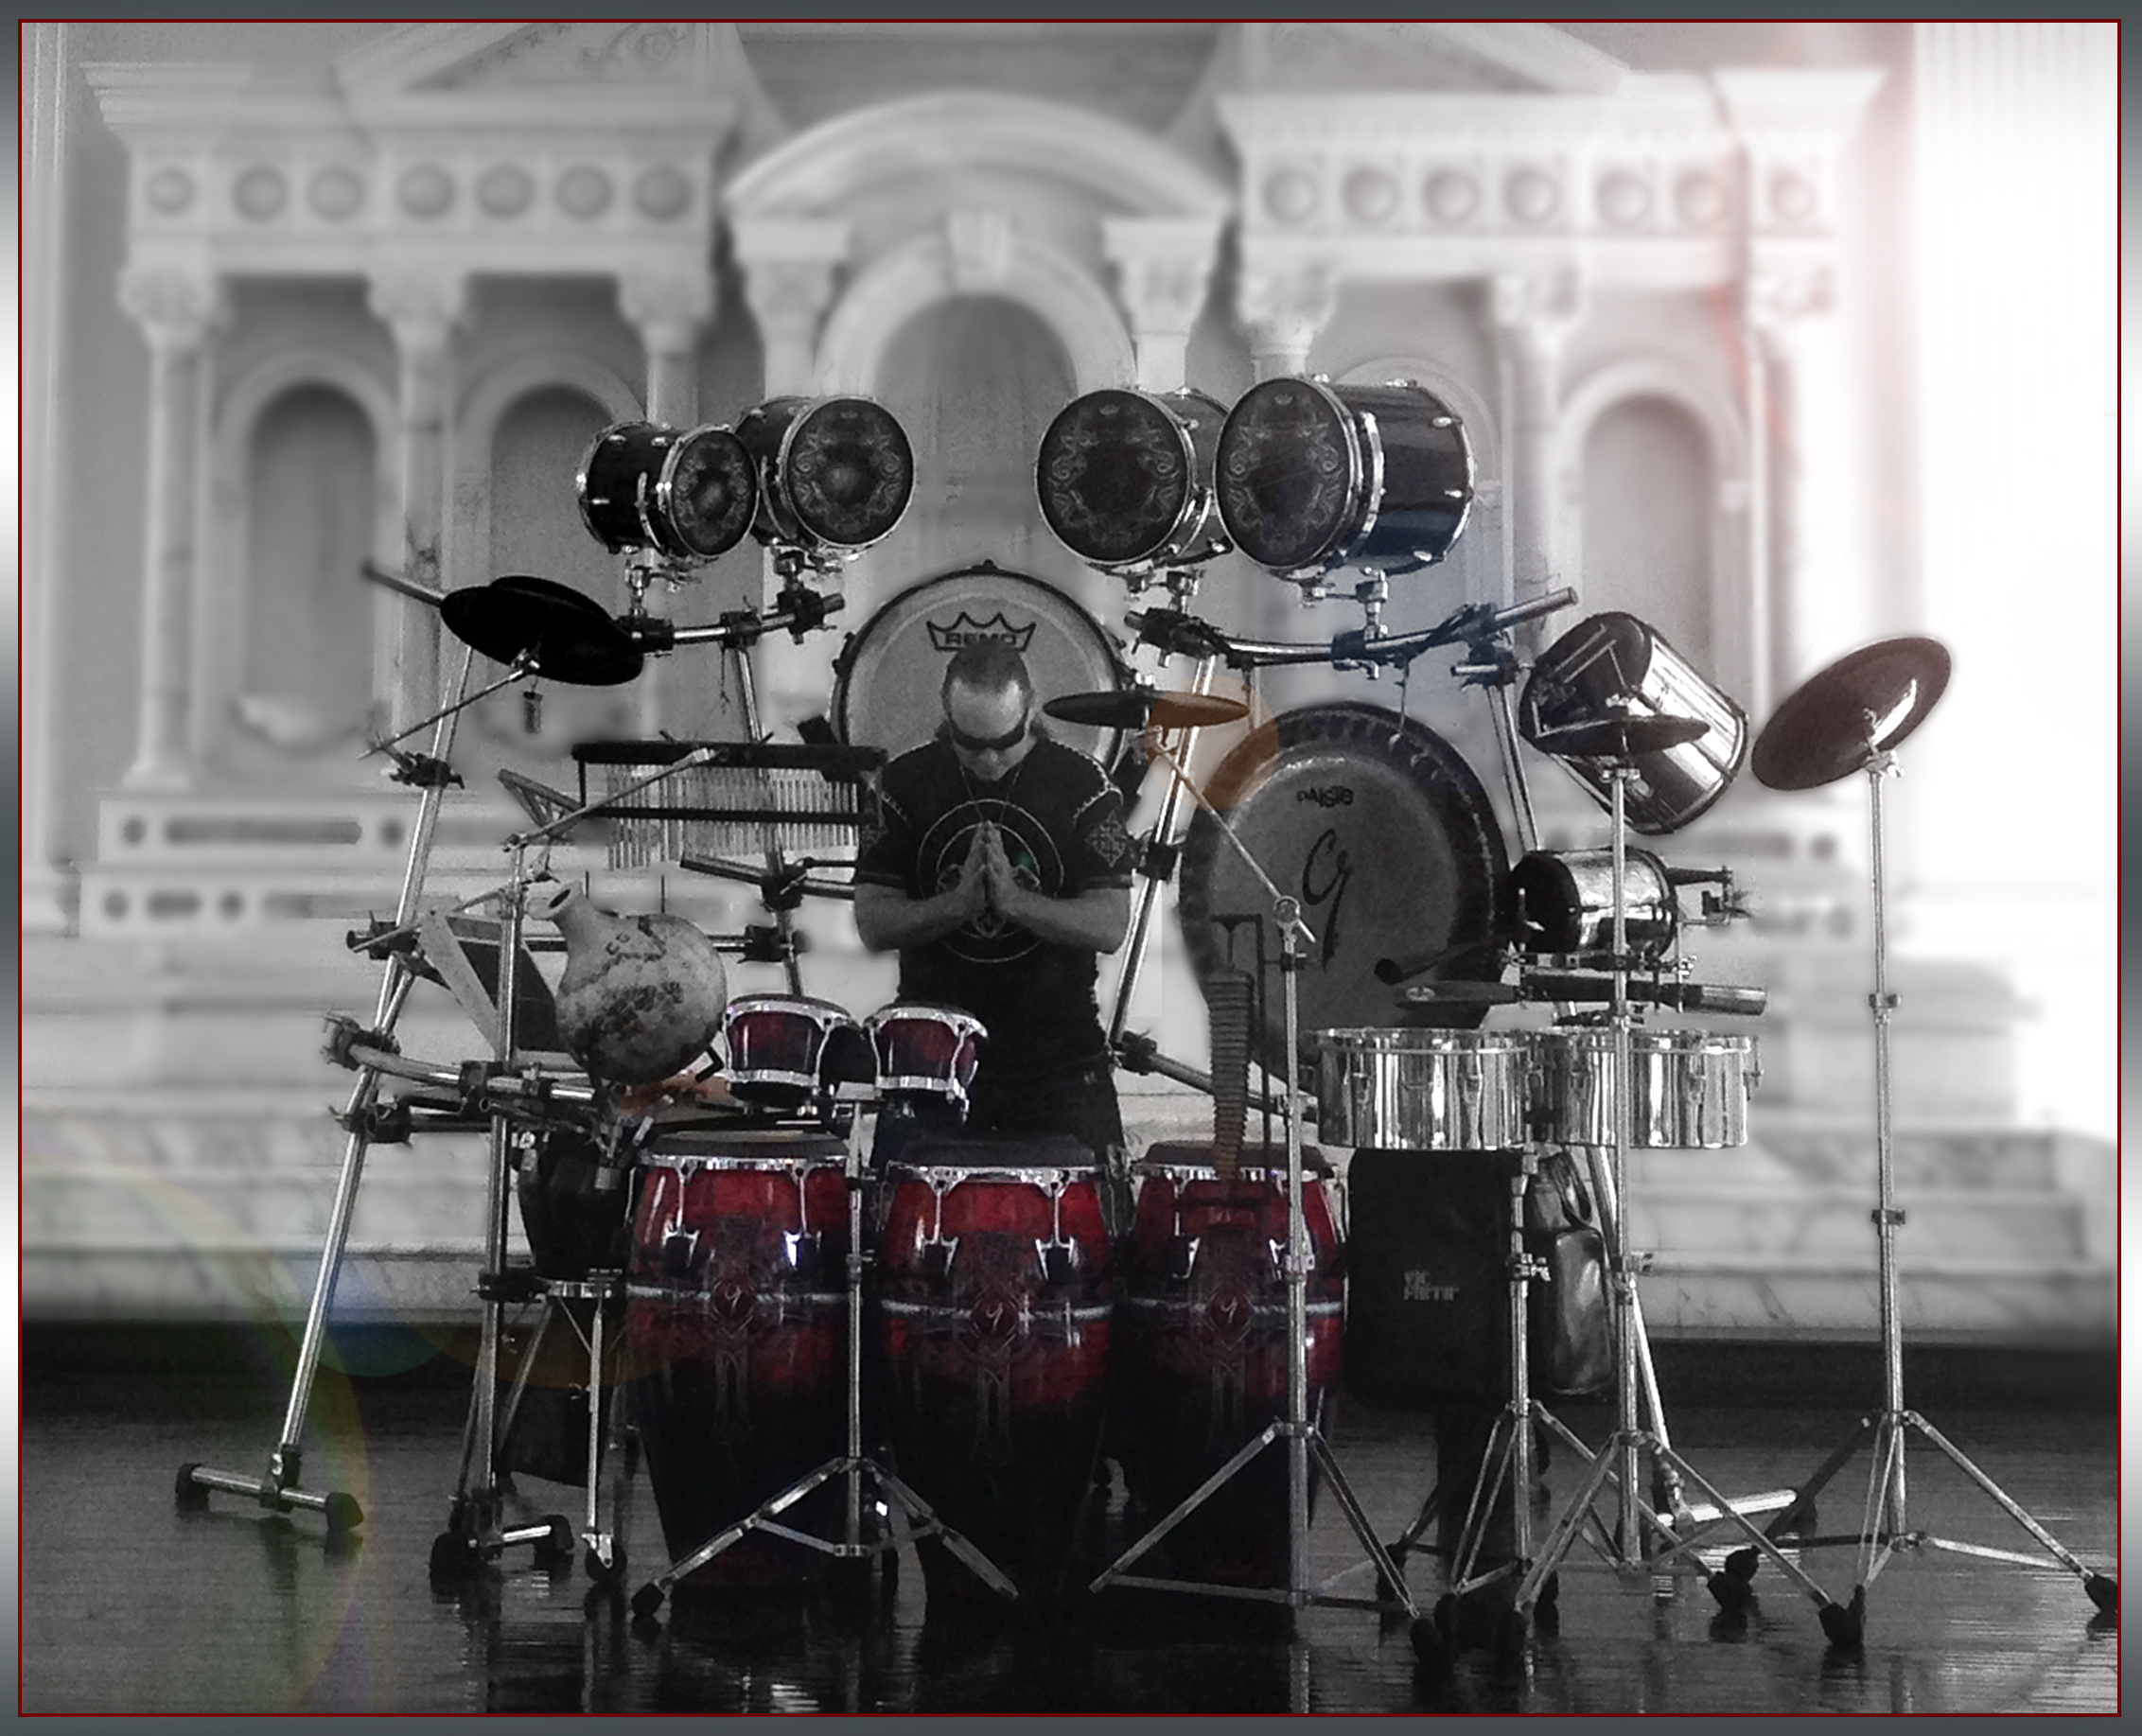 SOLO PERFORMANCE - This is C.G. Ryche performing to his music solo. Know internationally as one of the most ground-breaking and exciting percussionist today, Ryche has performed solo for the NFL, Open for Roger Daultrey & Queensryche and performs for years for Disneyland Resorts & Universal Studios.